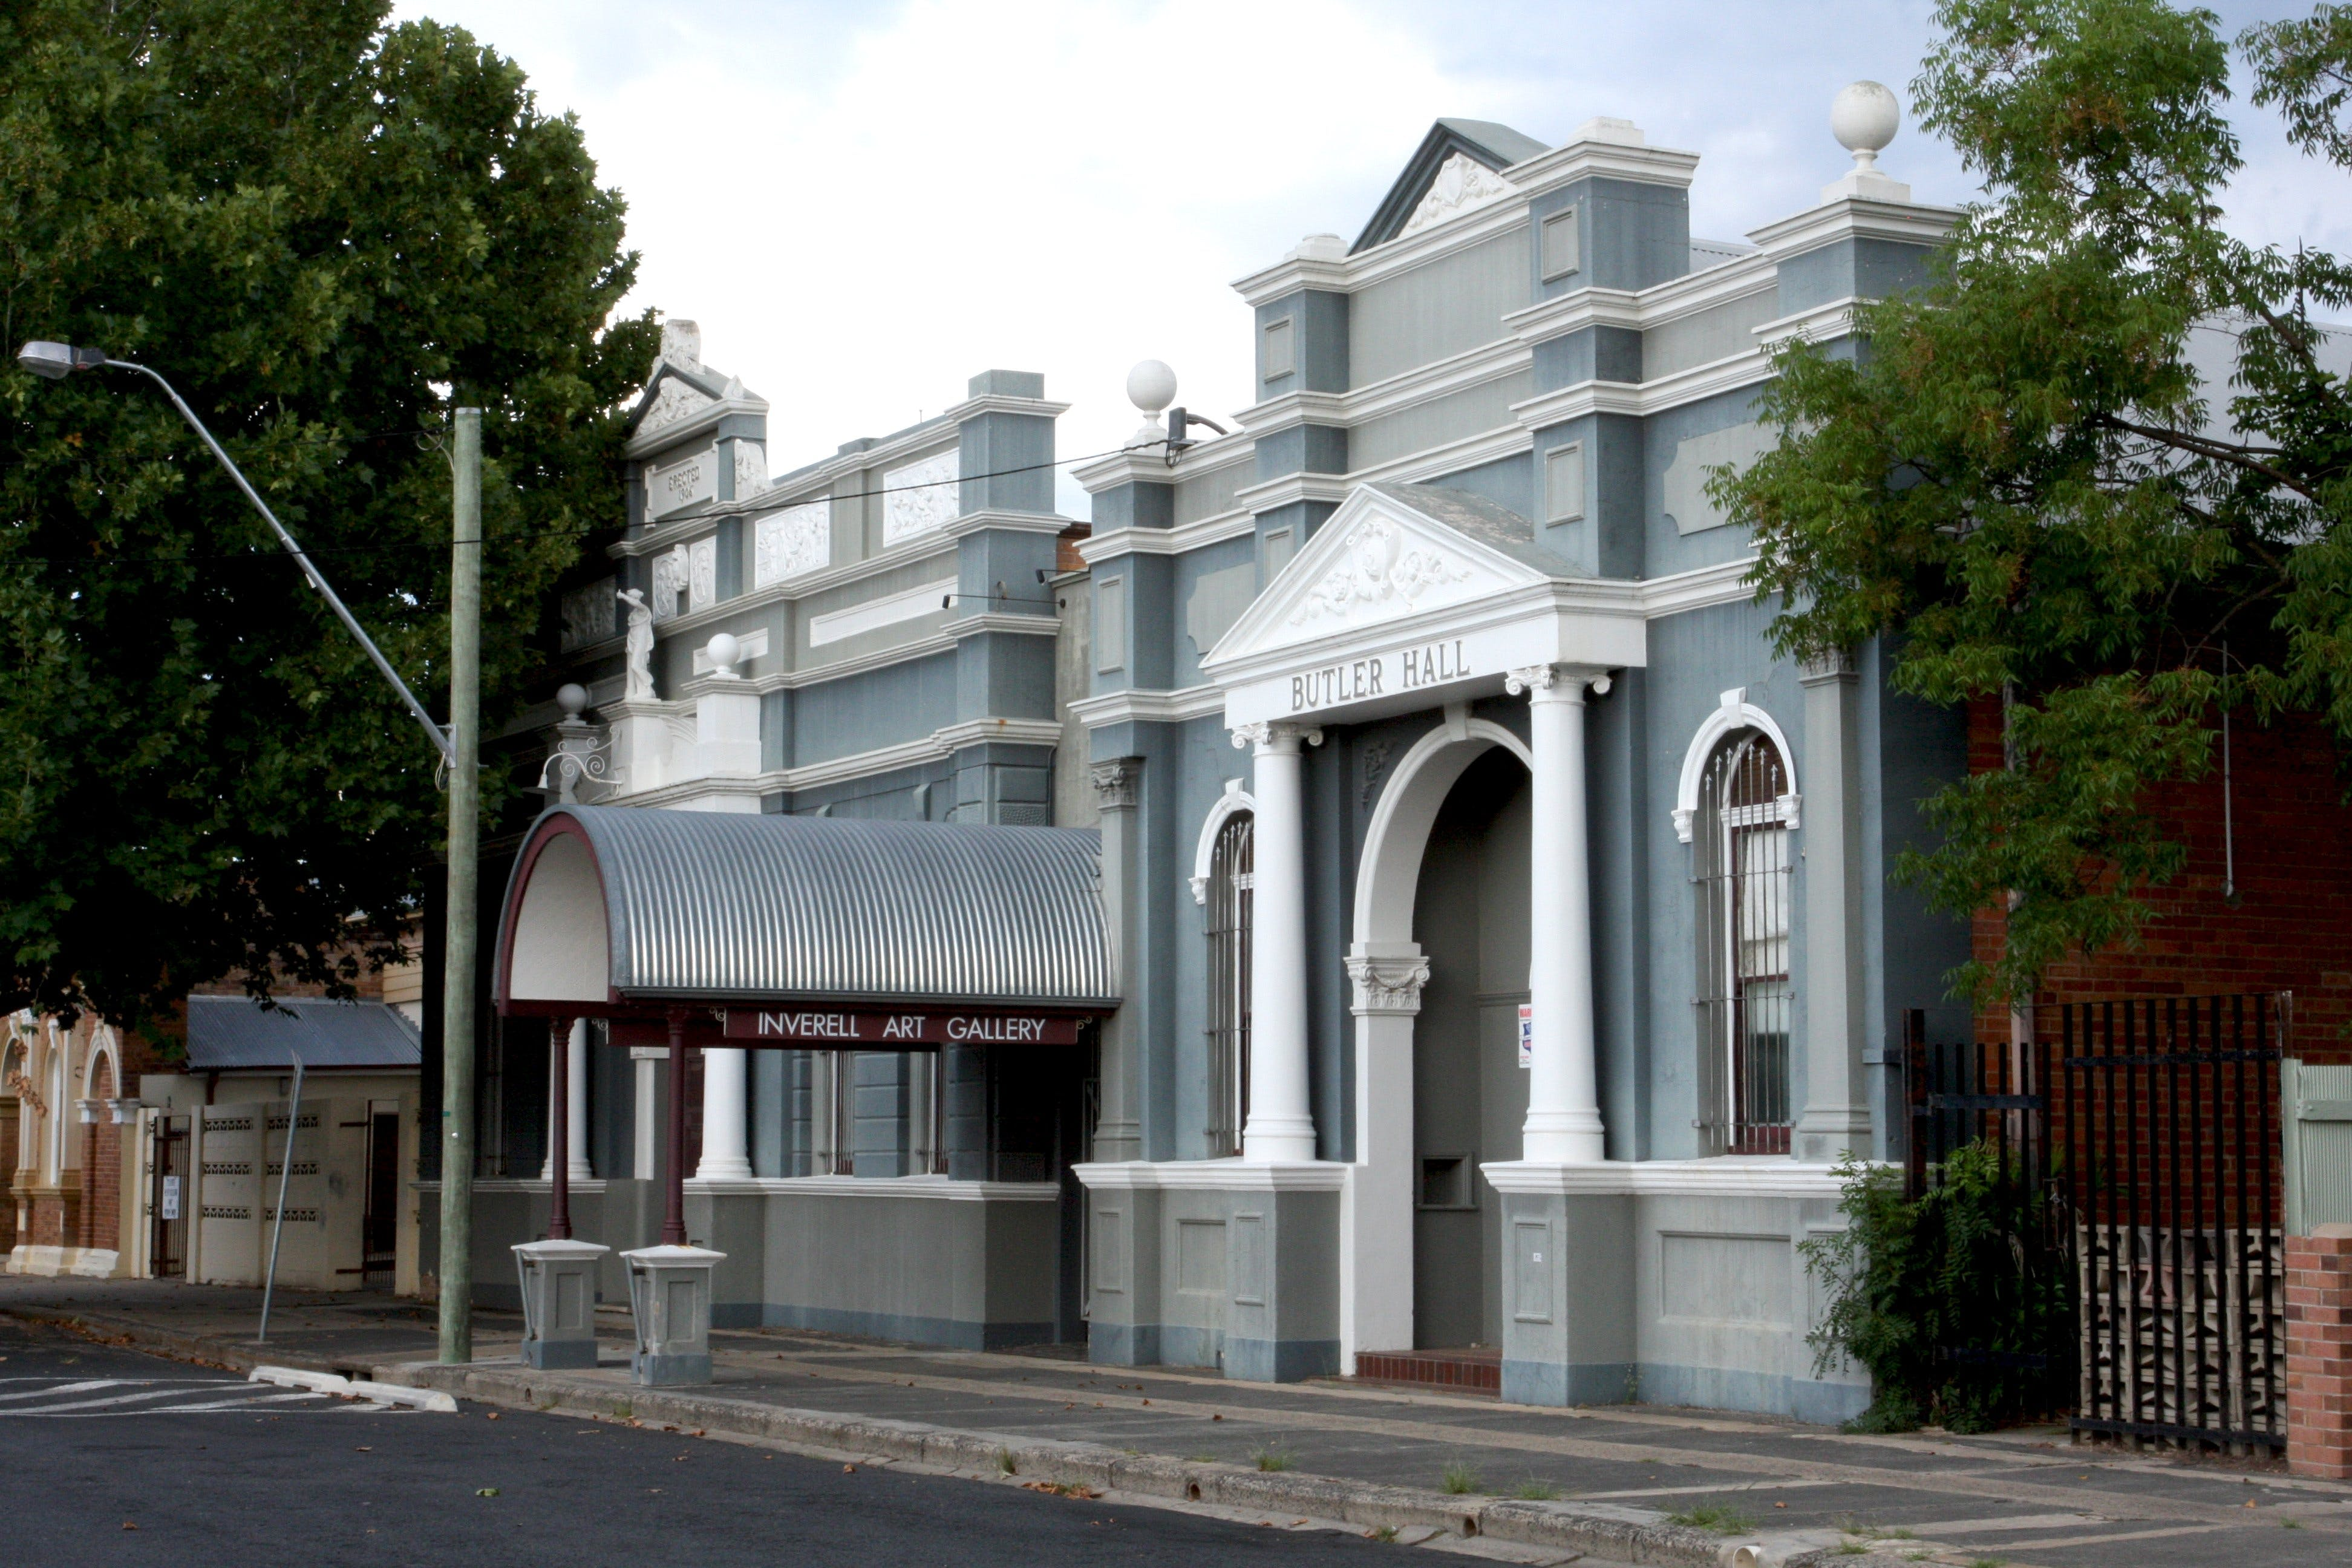 Inverell Art  Gallery - QLD Tourism